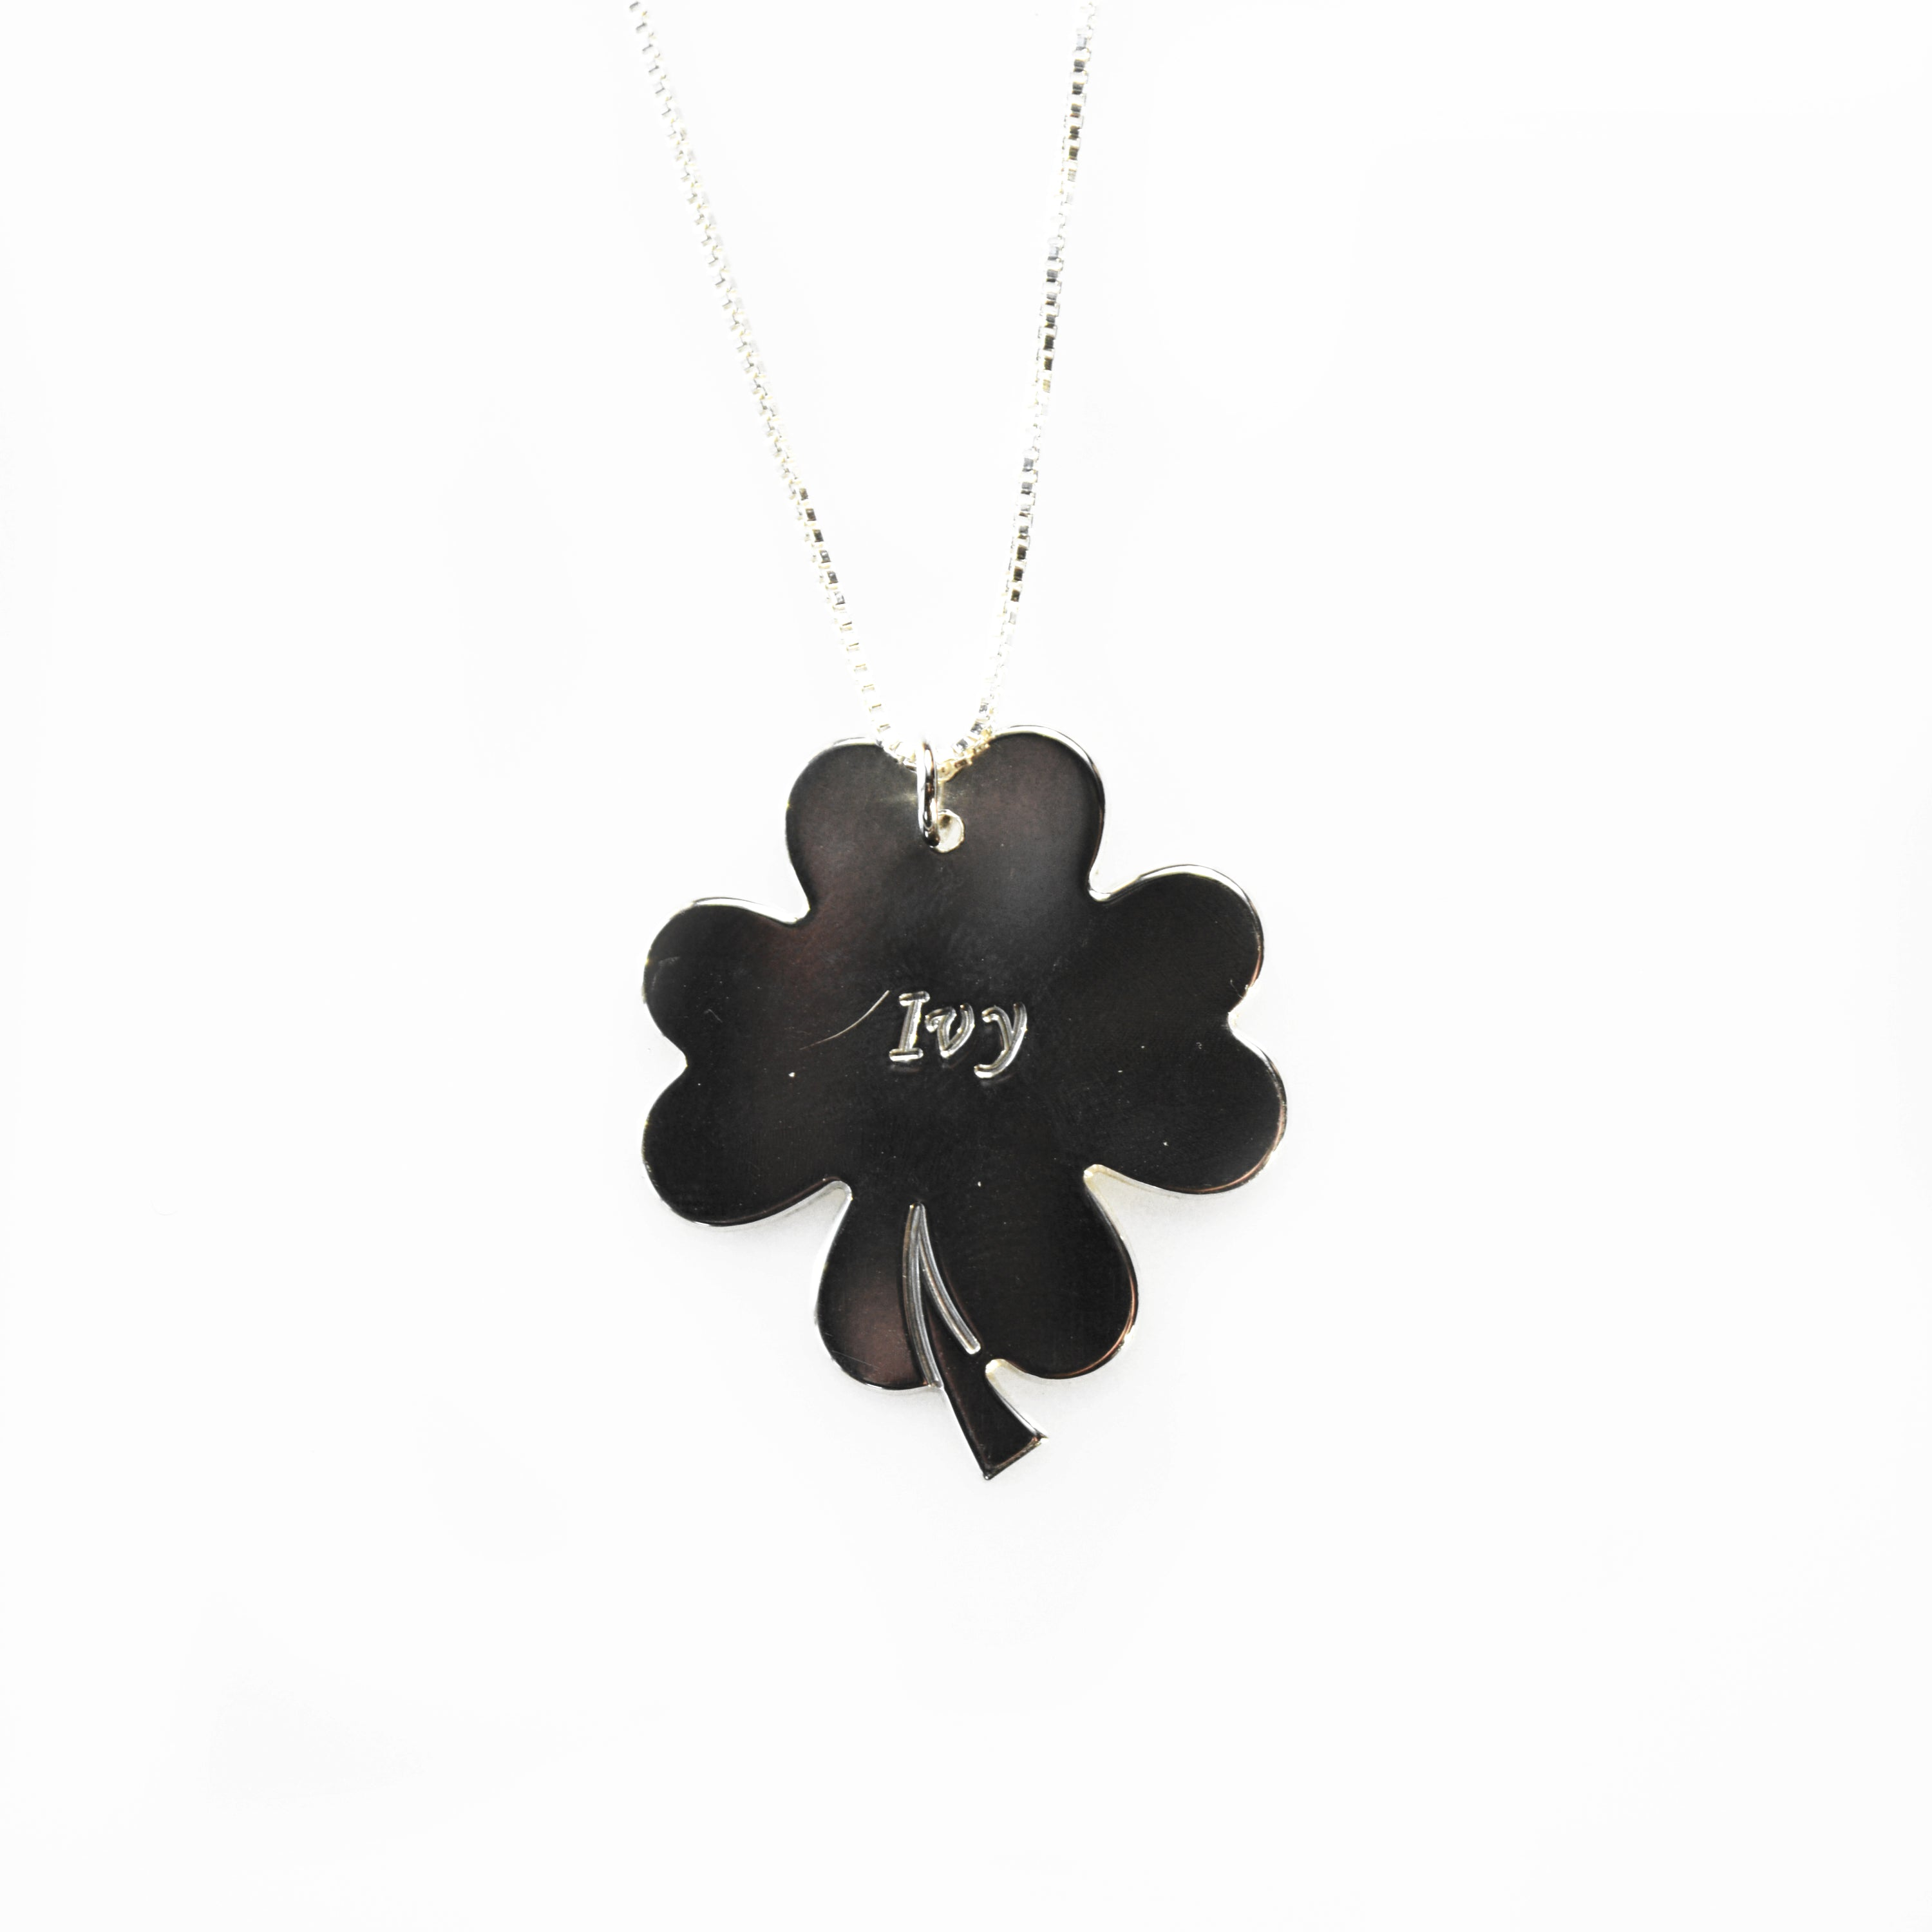 Ivy Name necklace